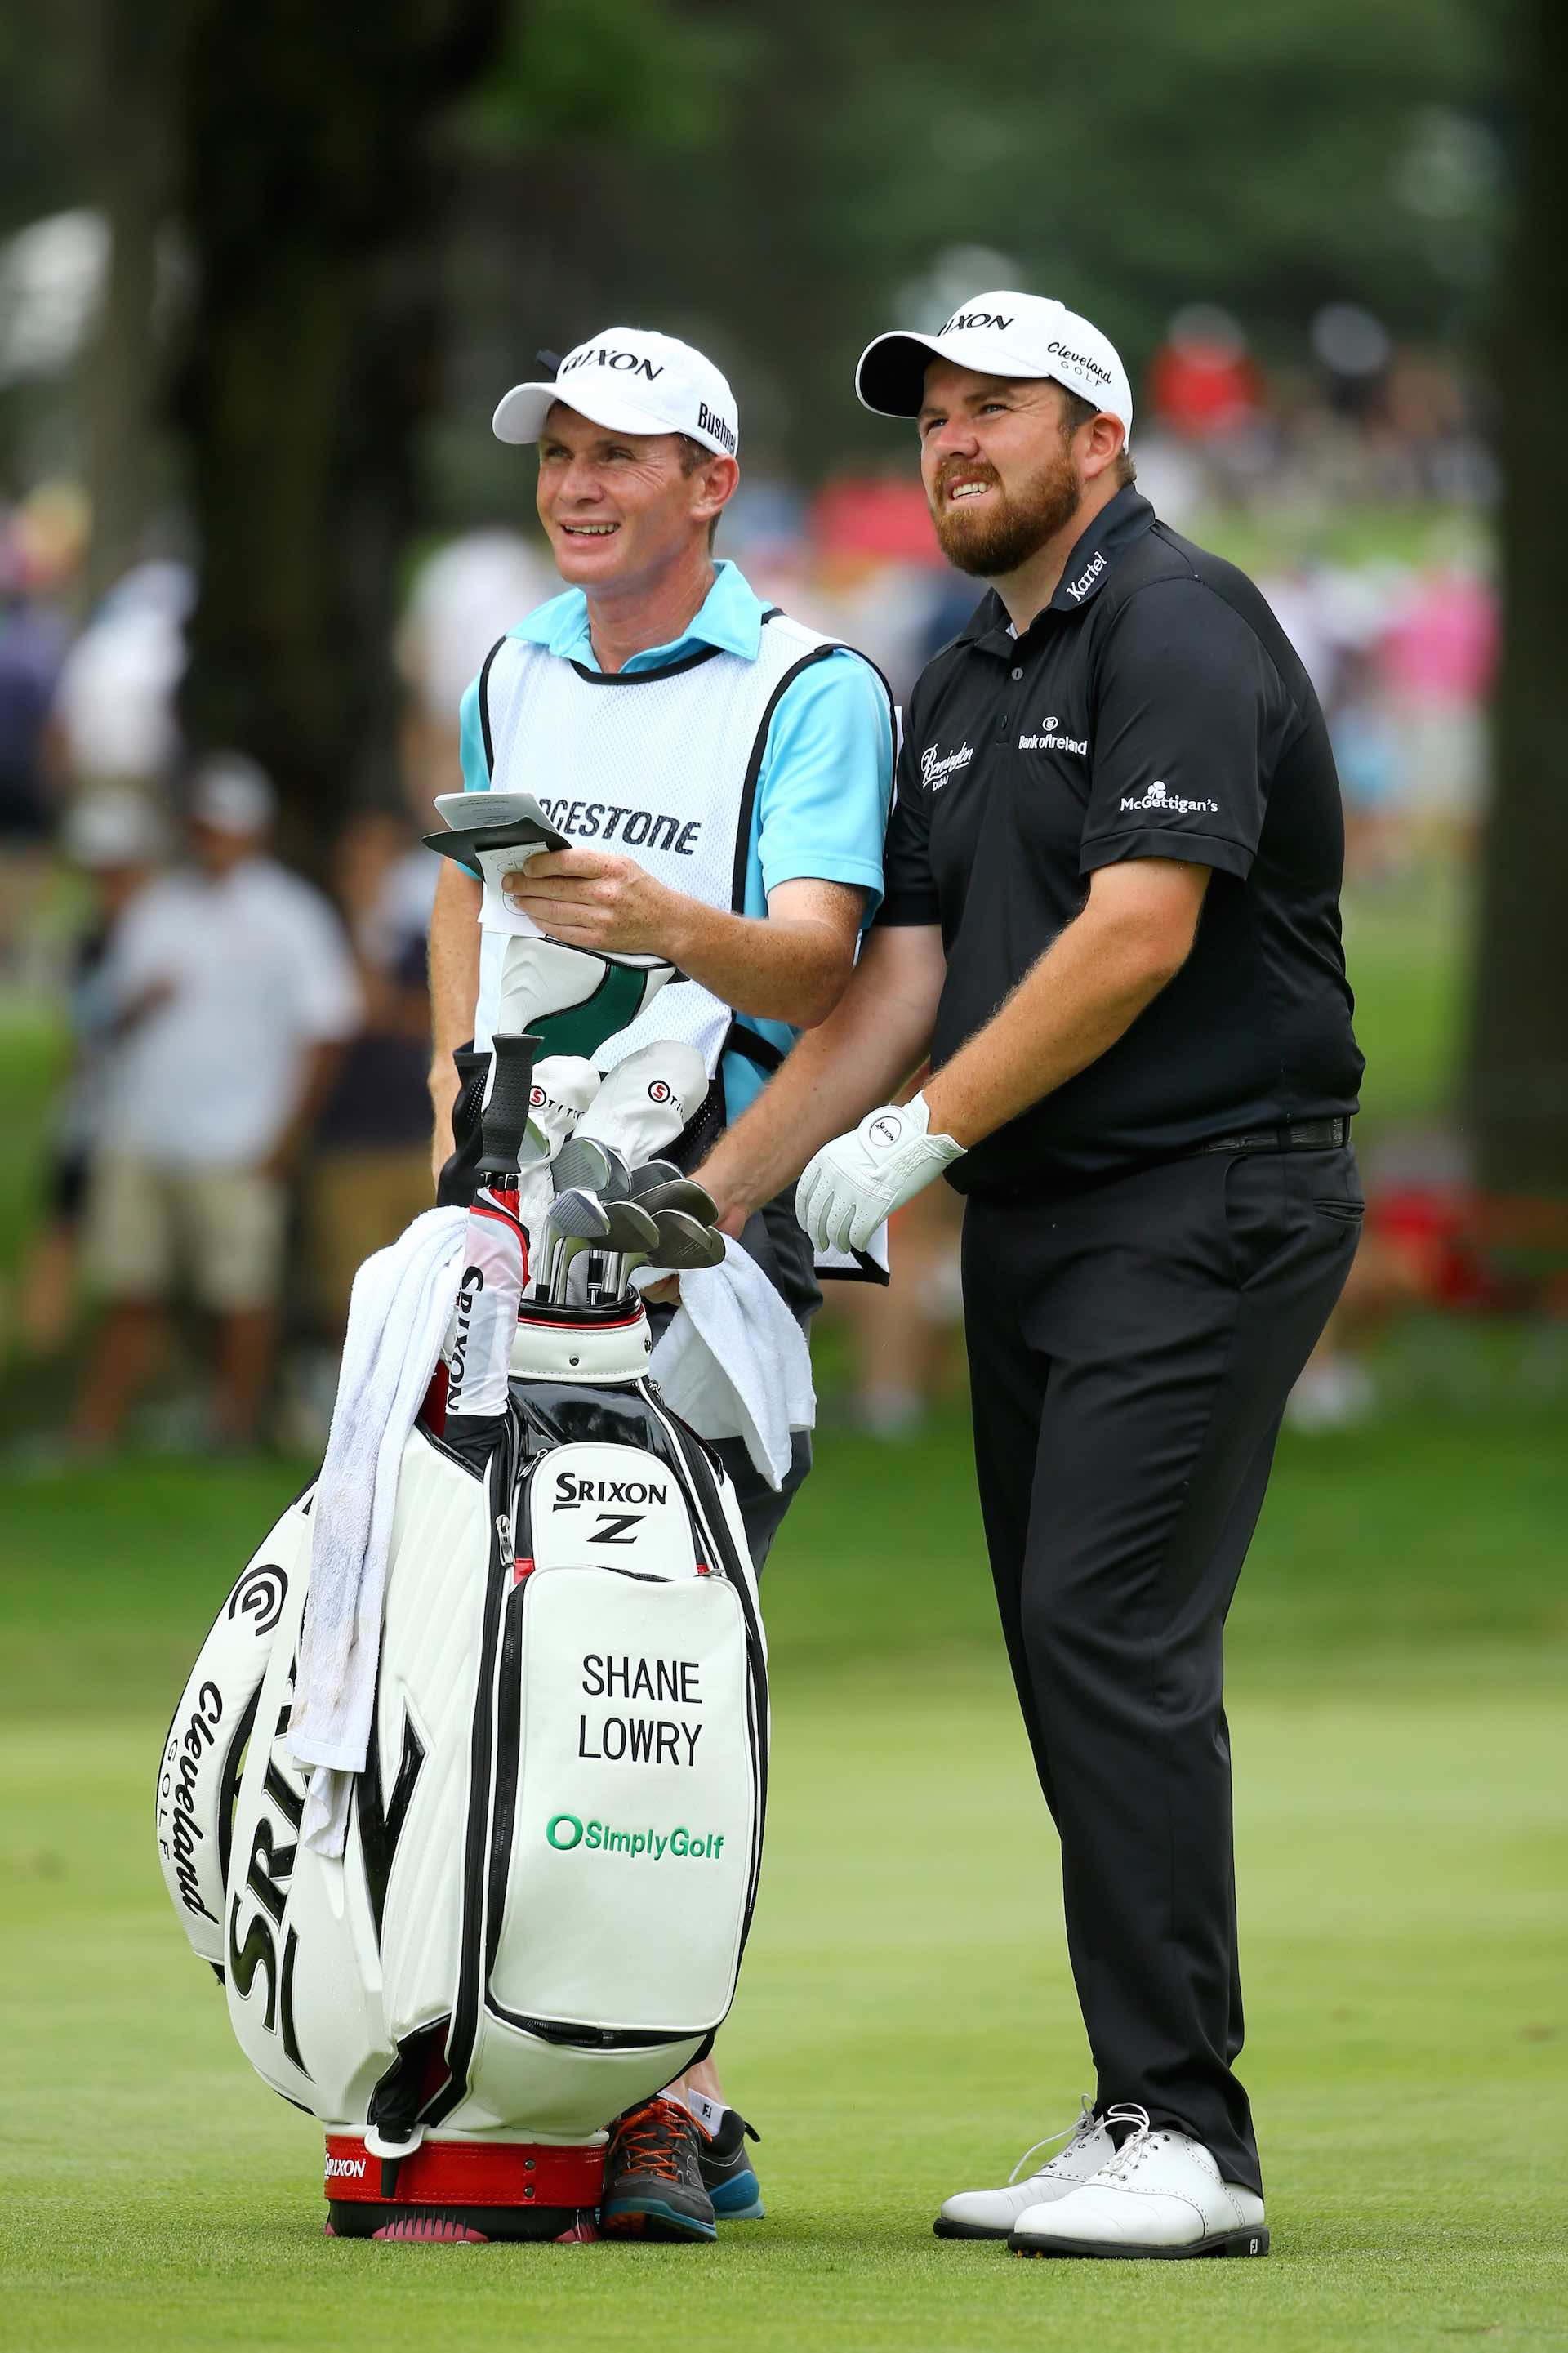 Shane Lowry's WGC Winning What's In the Bag...